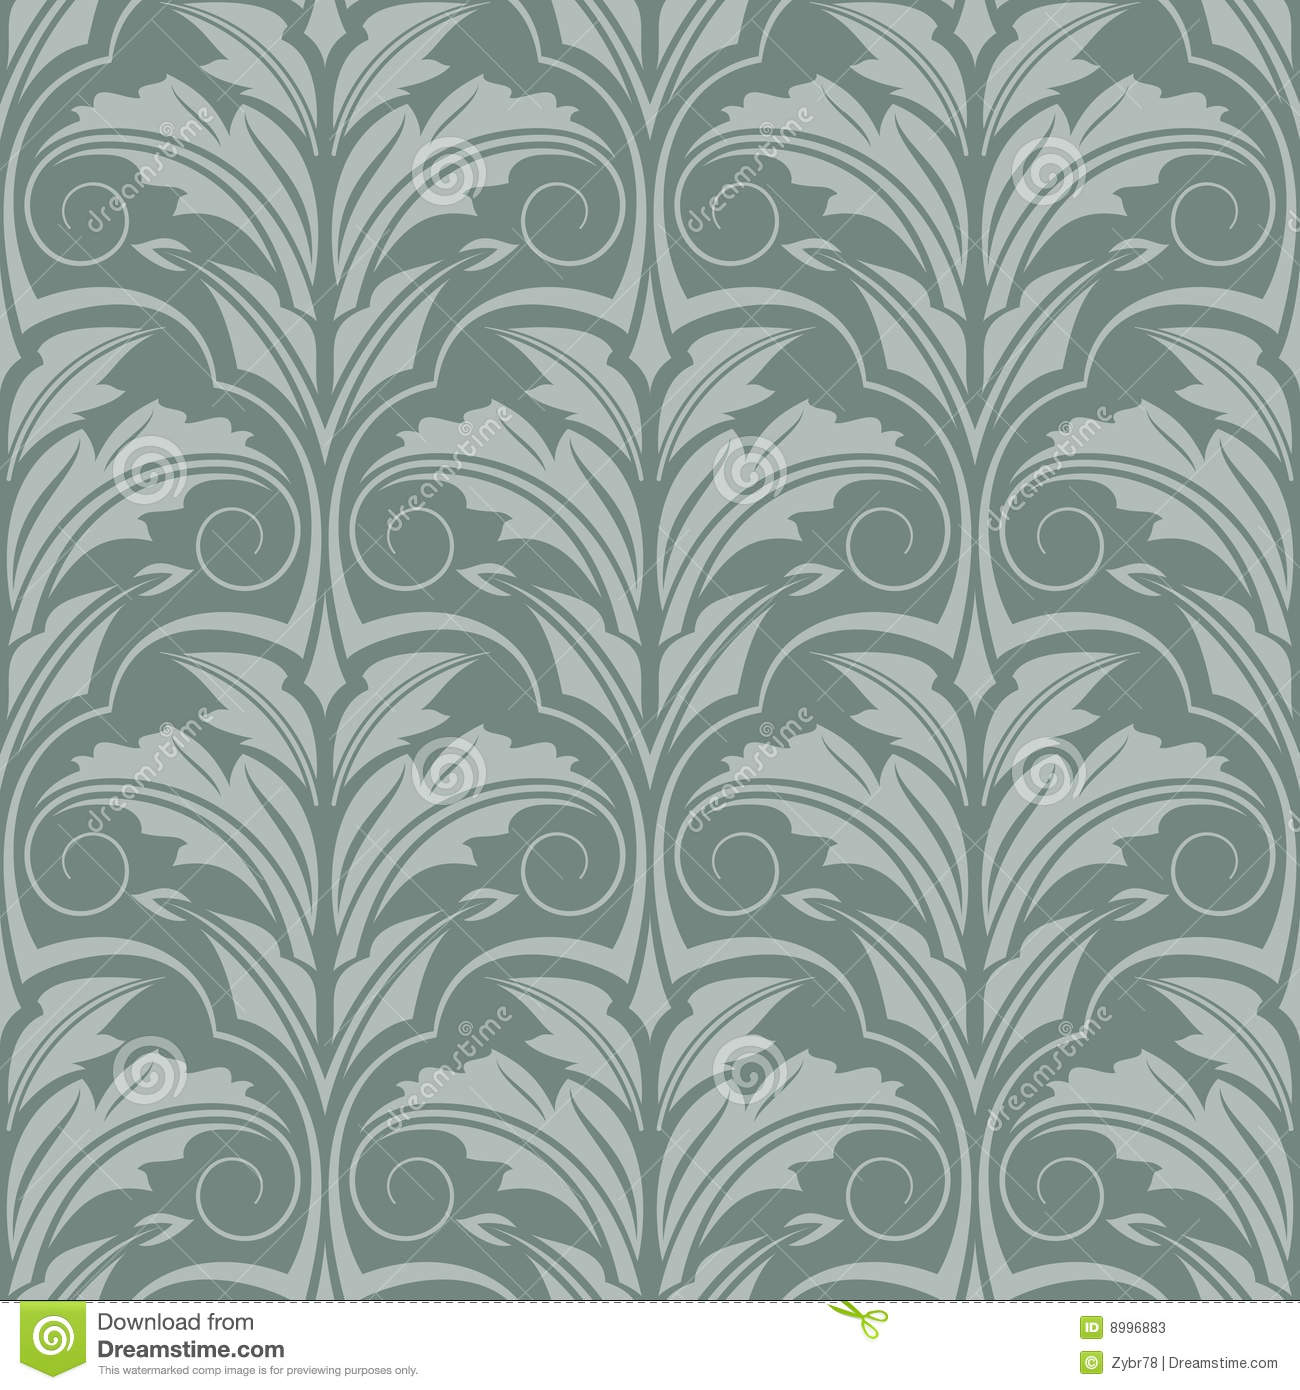 papier peint gris vert illustration de vecteur illustration du feuillage 8996883. Black Bedroom Furniture Sets. Home Design Ideas